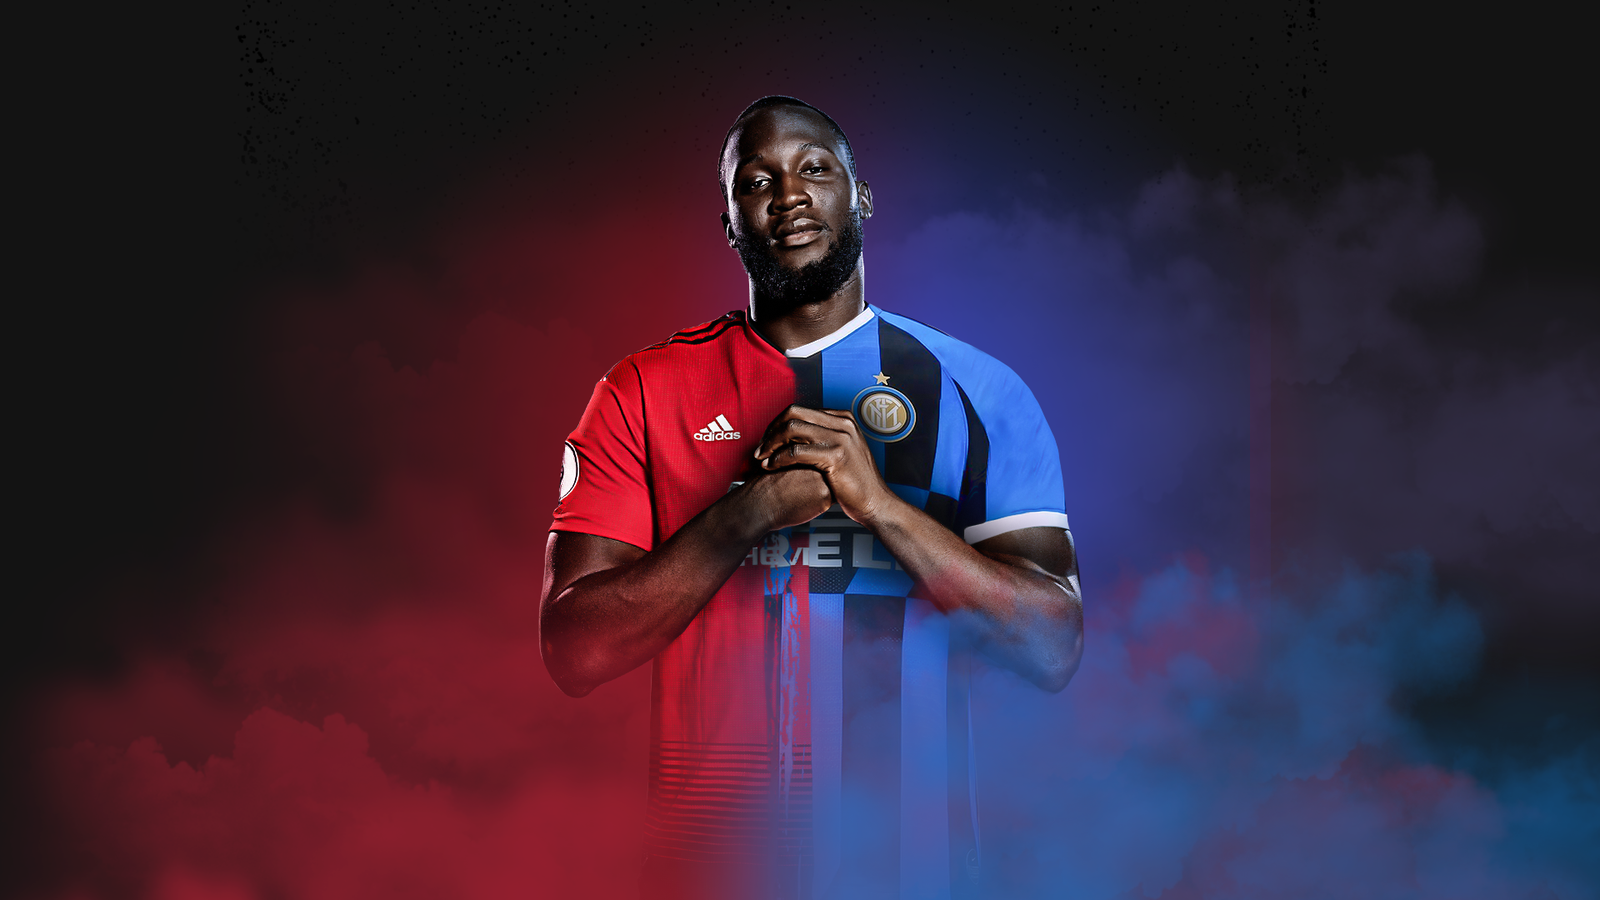 Romelu Lukaku Leaves Manchester United With His Premier